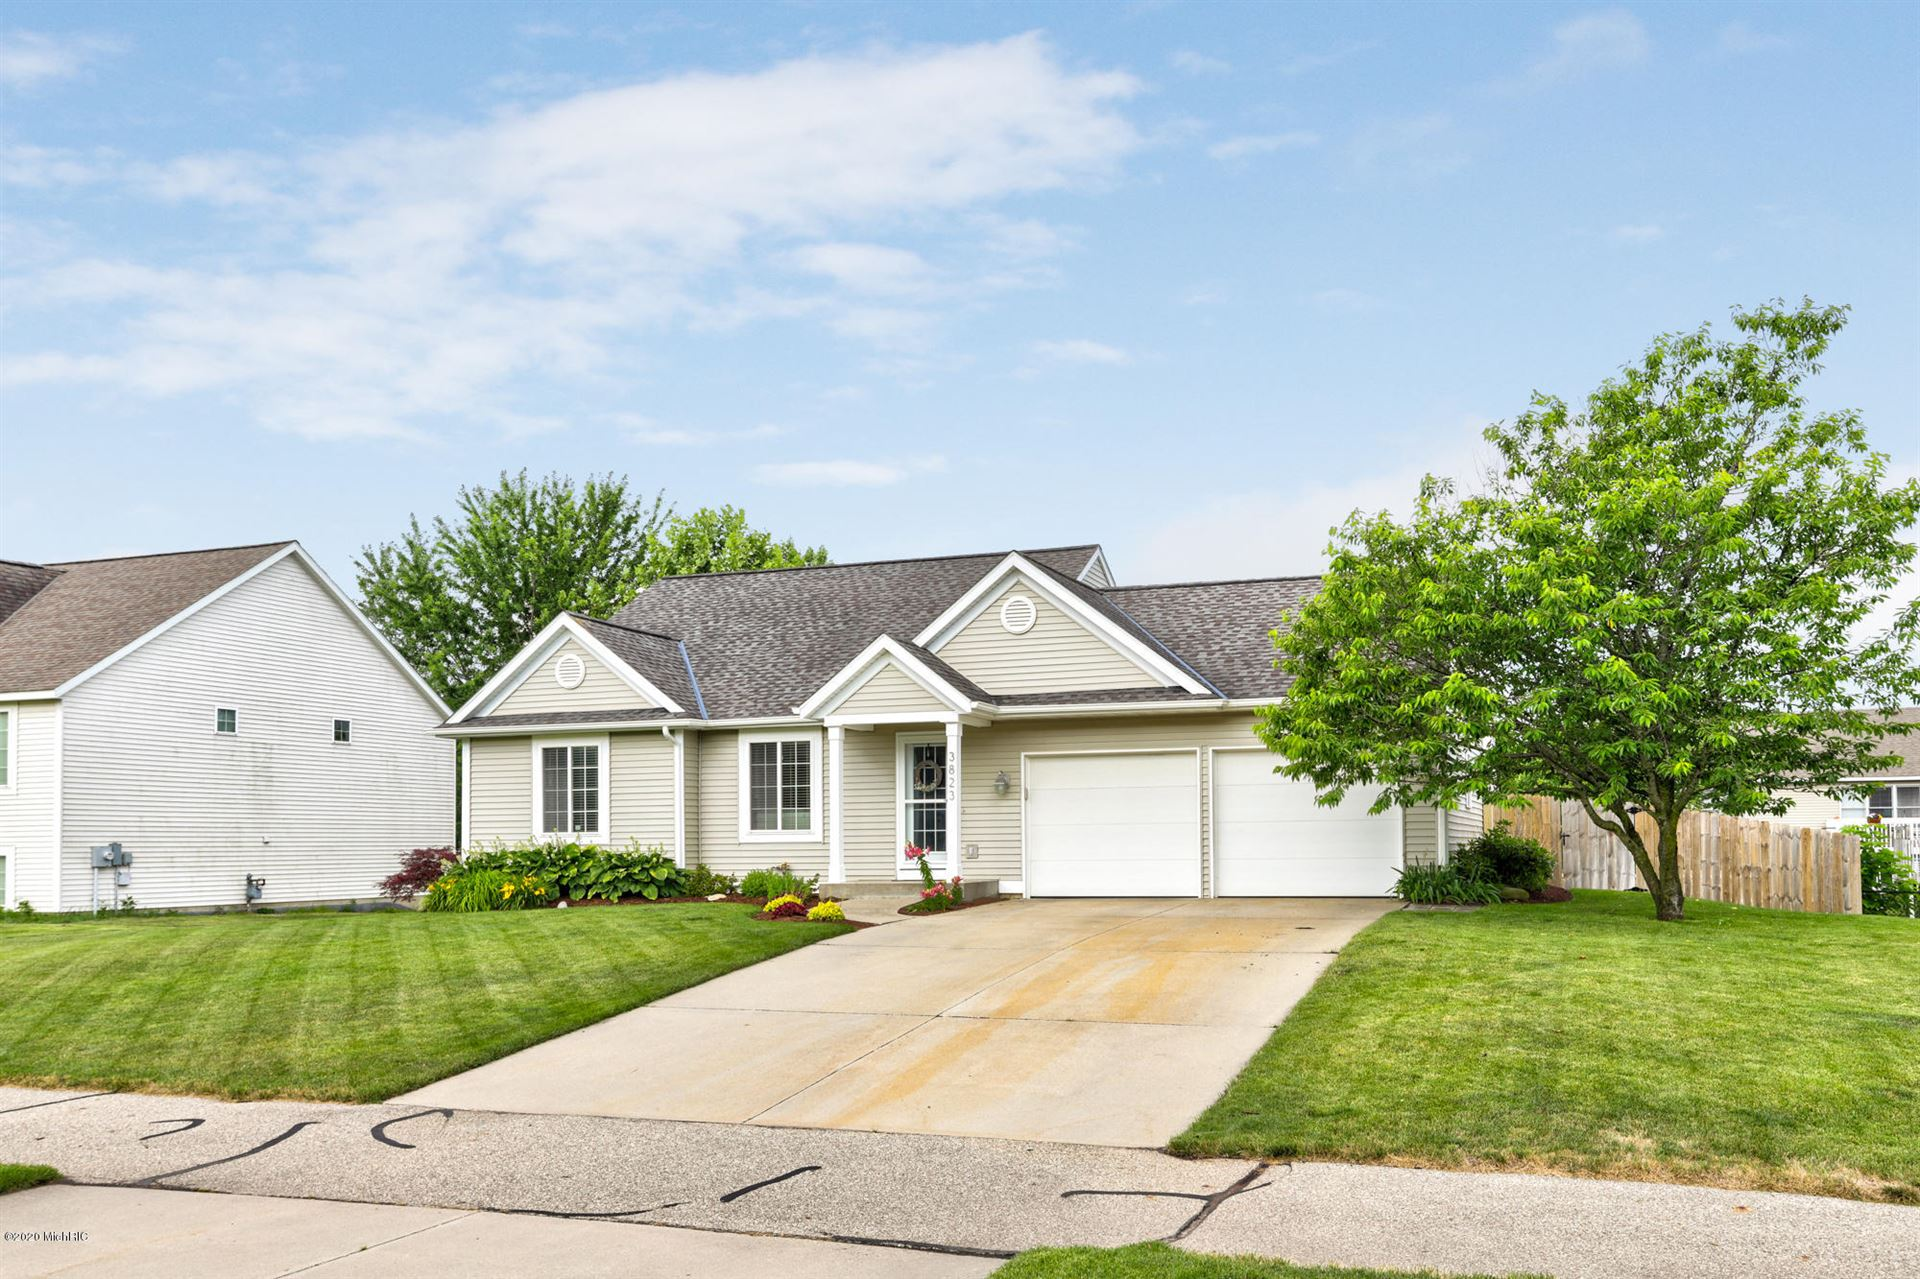 Photo of 3823 142nd Avenue, Holland, MI 49424 (MLS # 20025310)